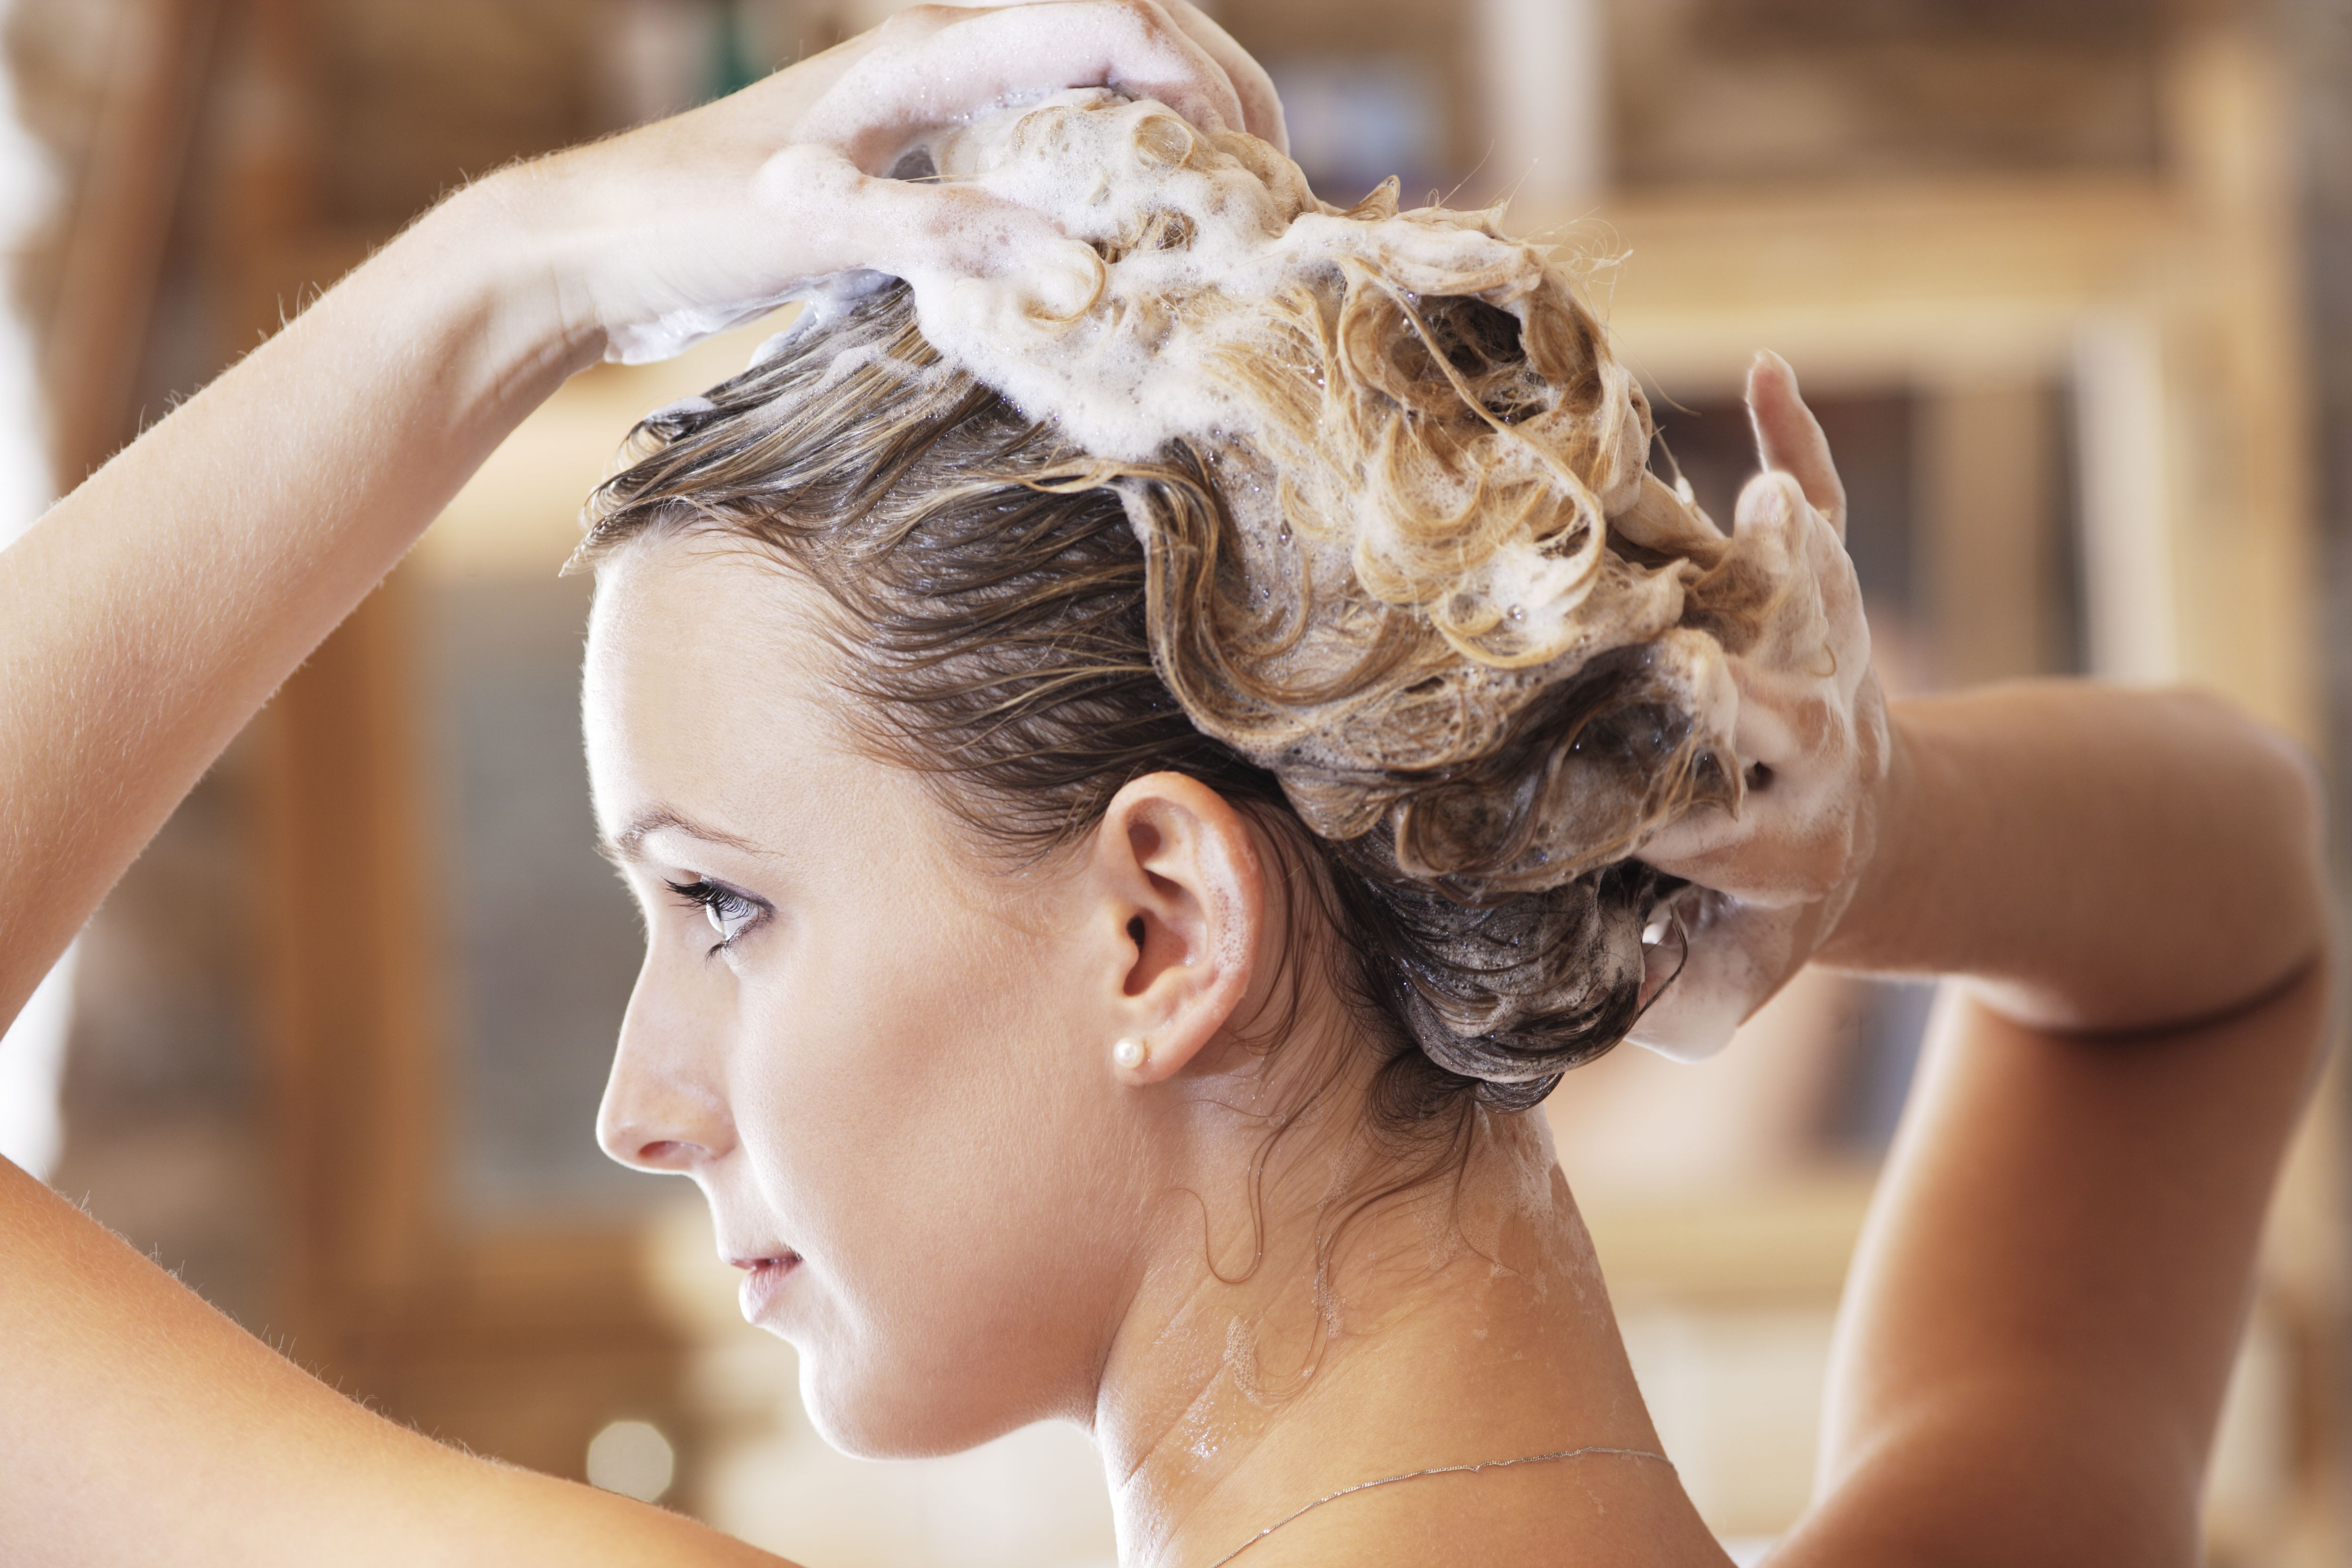 How to Style Hair 13 Tricks Every Woman Should Know